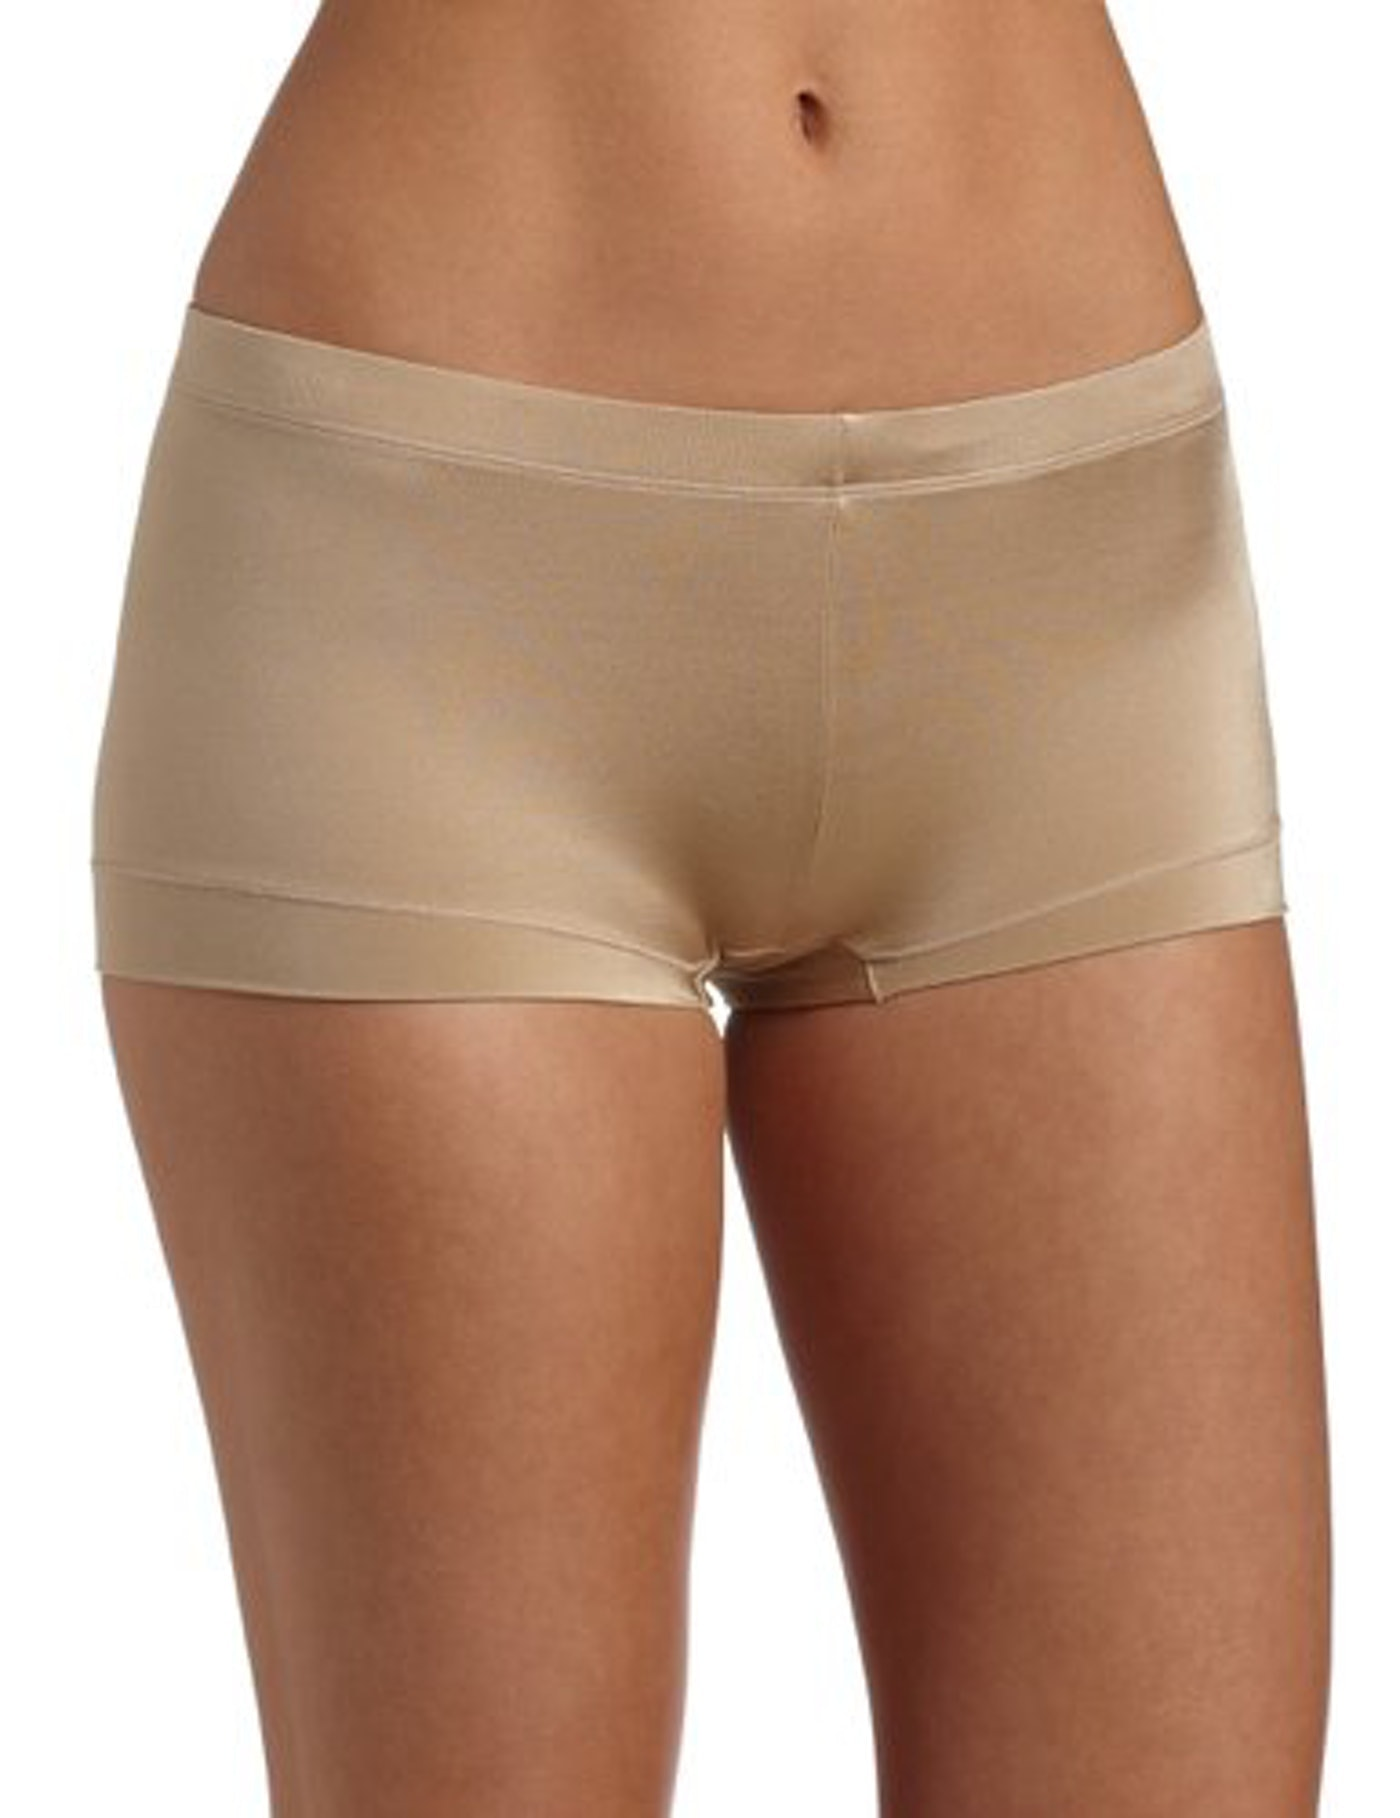 7c5030c97a77 10 Best Undies For Skirts & Dresses When You Want More Coverage, Because  Wind